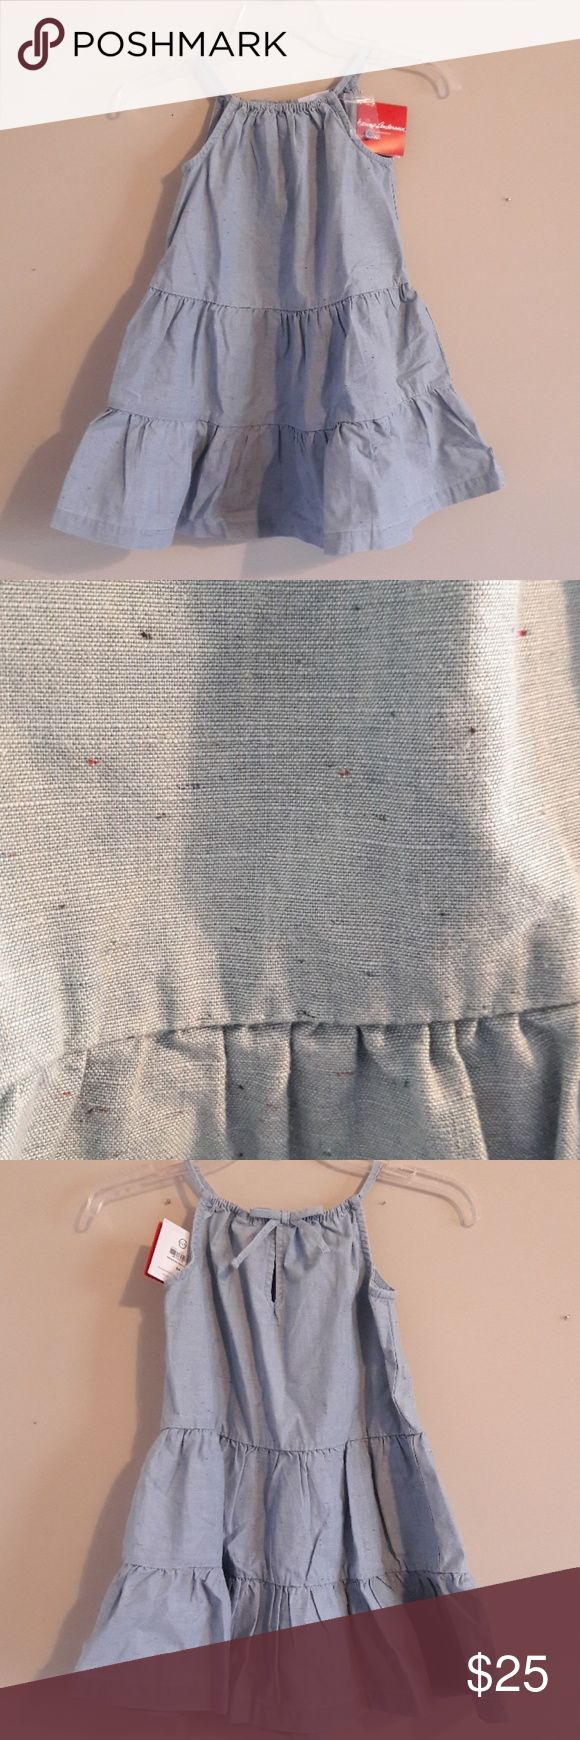 NWT Hanna Andersson Cotton Summer Dress Size  110 cm | US 5   42-46 in 37-48 lbs  New with tags. Looks denim from afar. So adorable!   Please message me with any questions   Thank you Hanna Andersson Dresses Casual